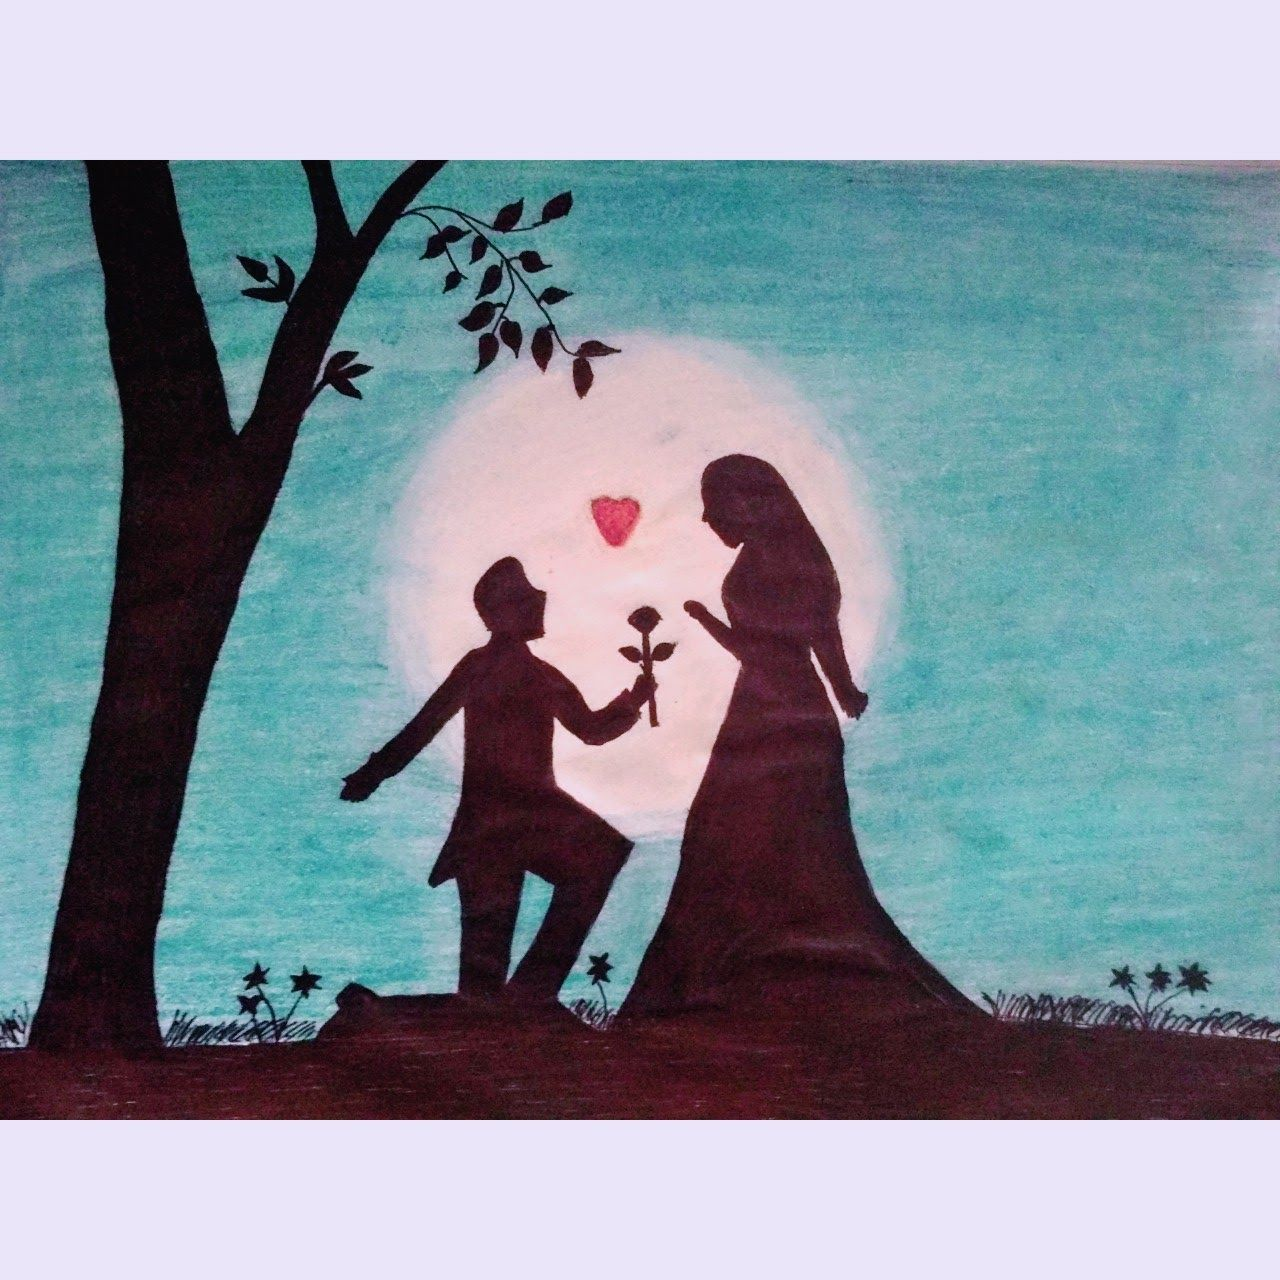 Day S Eye Pencil Sketch Of Romantic Night Love Proposing Sce Romantic Drawing Pencil Art Love Pencil Drawings Of Love